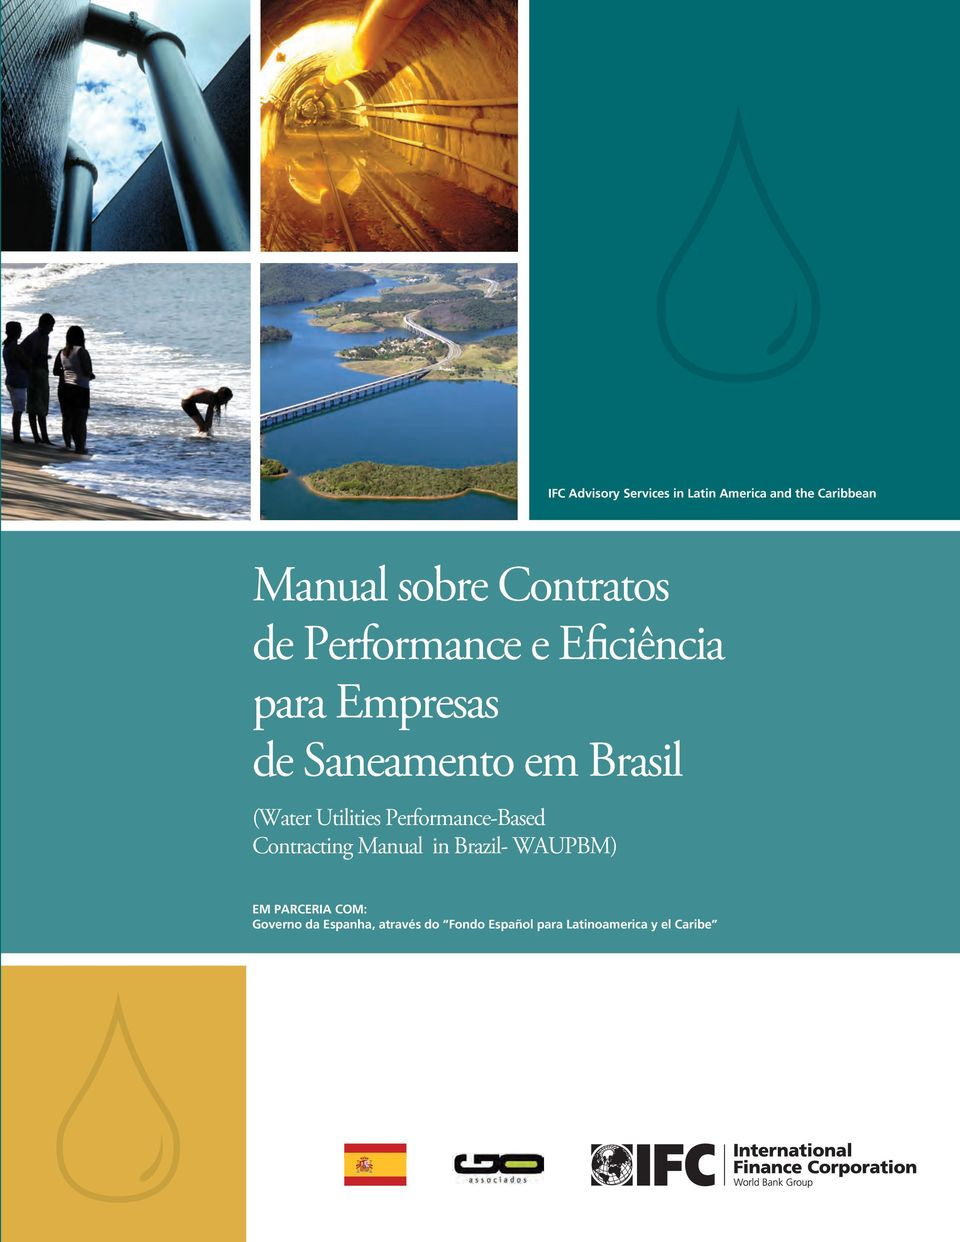 (Water Utilities Performance-Based Contracting Manual in Brazil- WAUPBM) EM